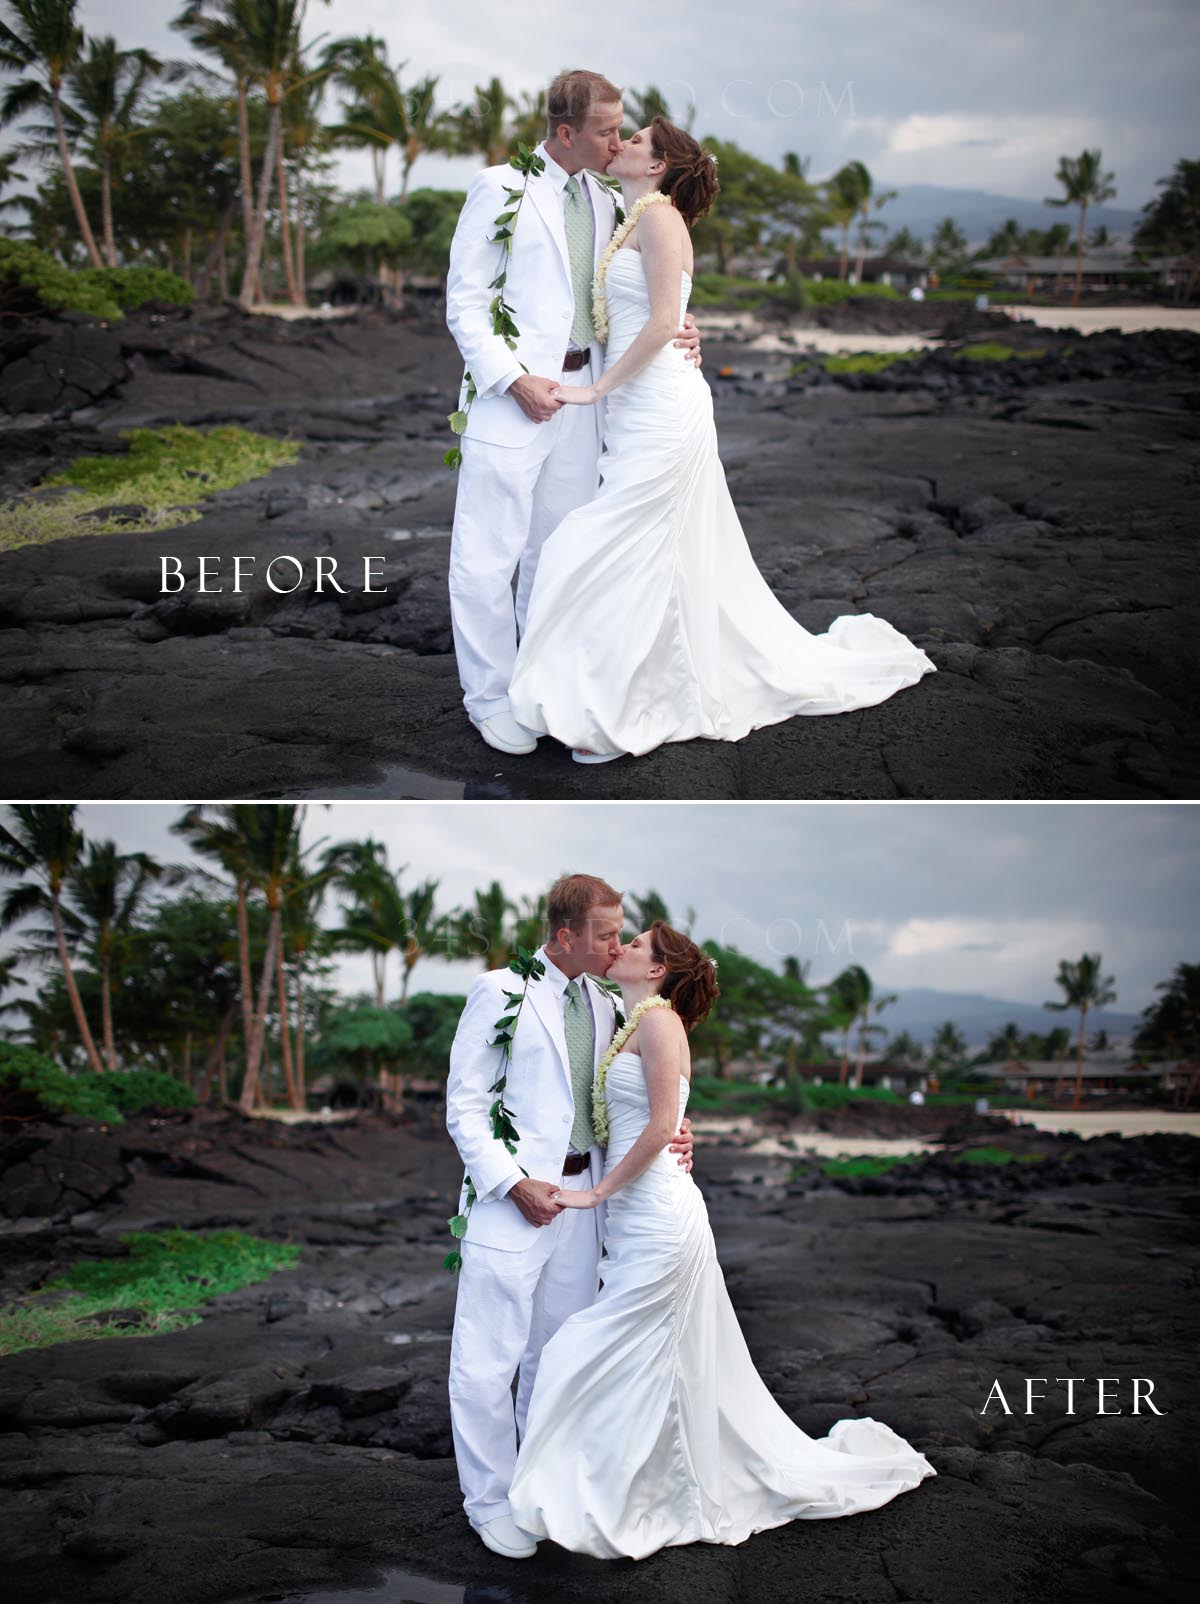 Wedding Photography Retouching: Wedding Photography Retouching Guide And Examples Of